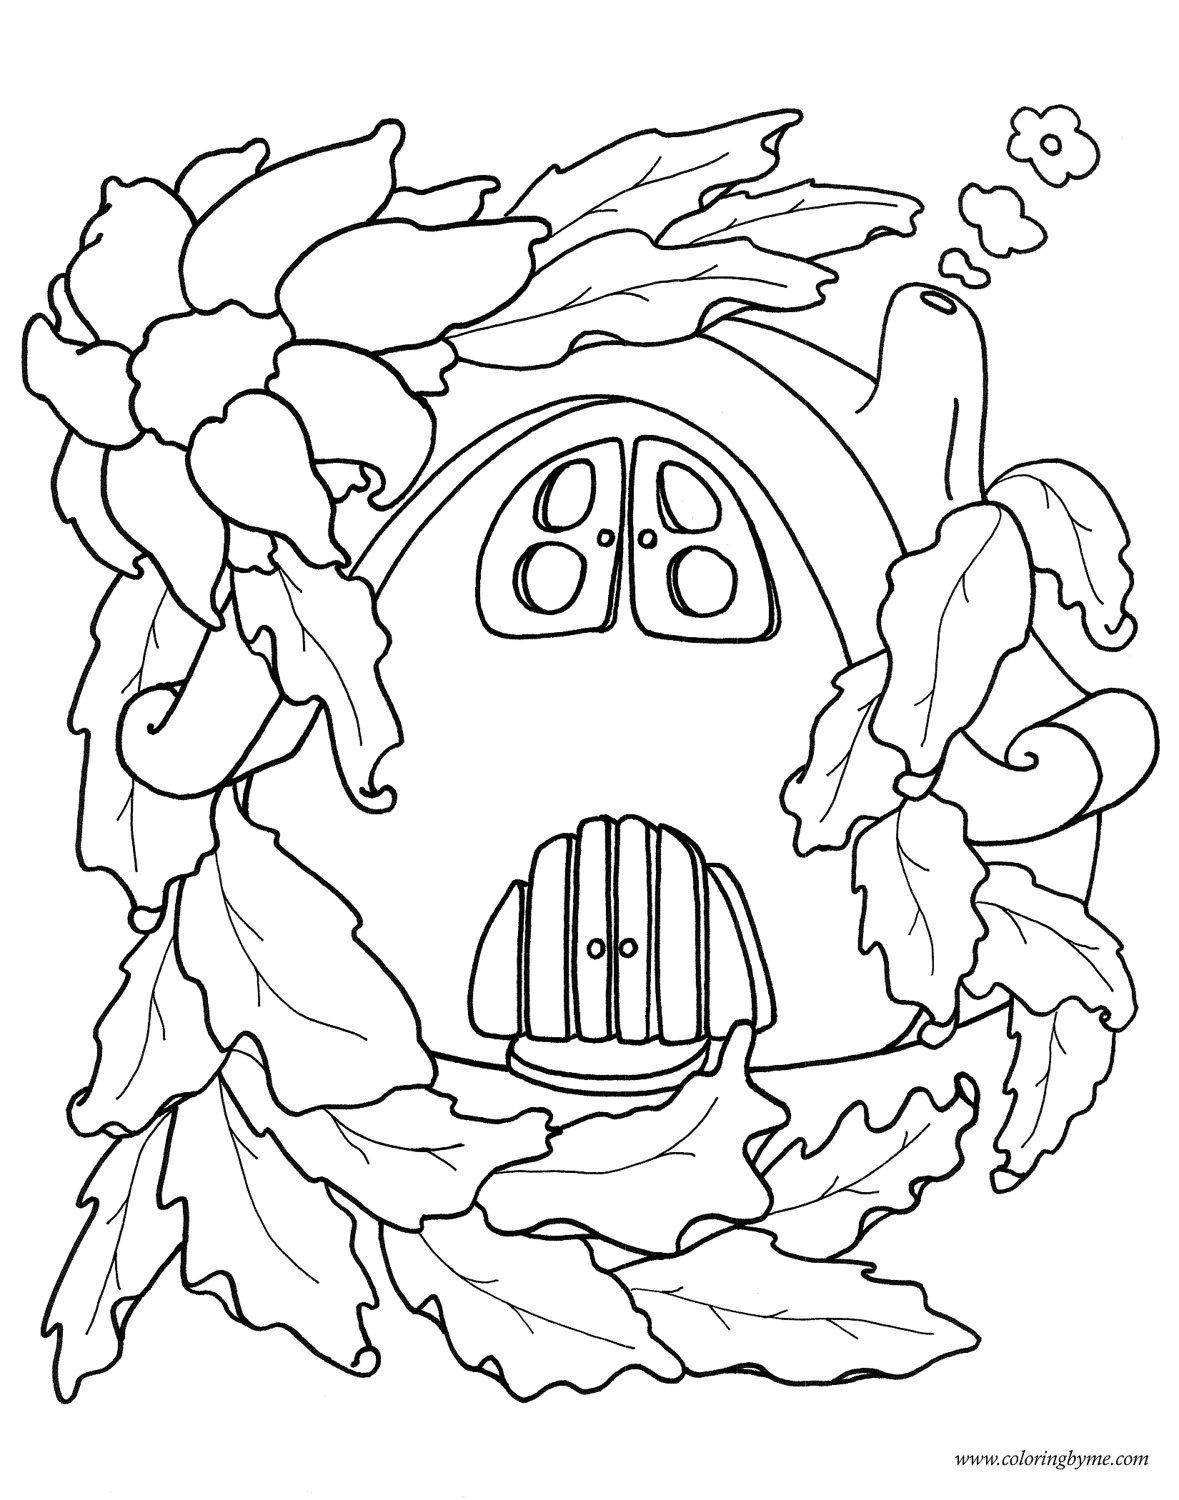 Fairy house coloring page | Kids: Coloring Book | Pinterest